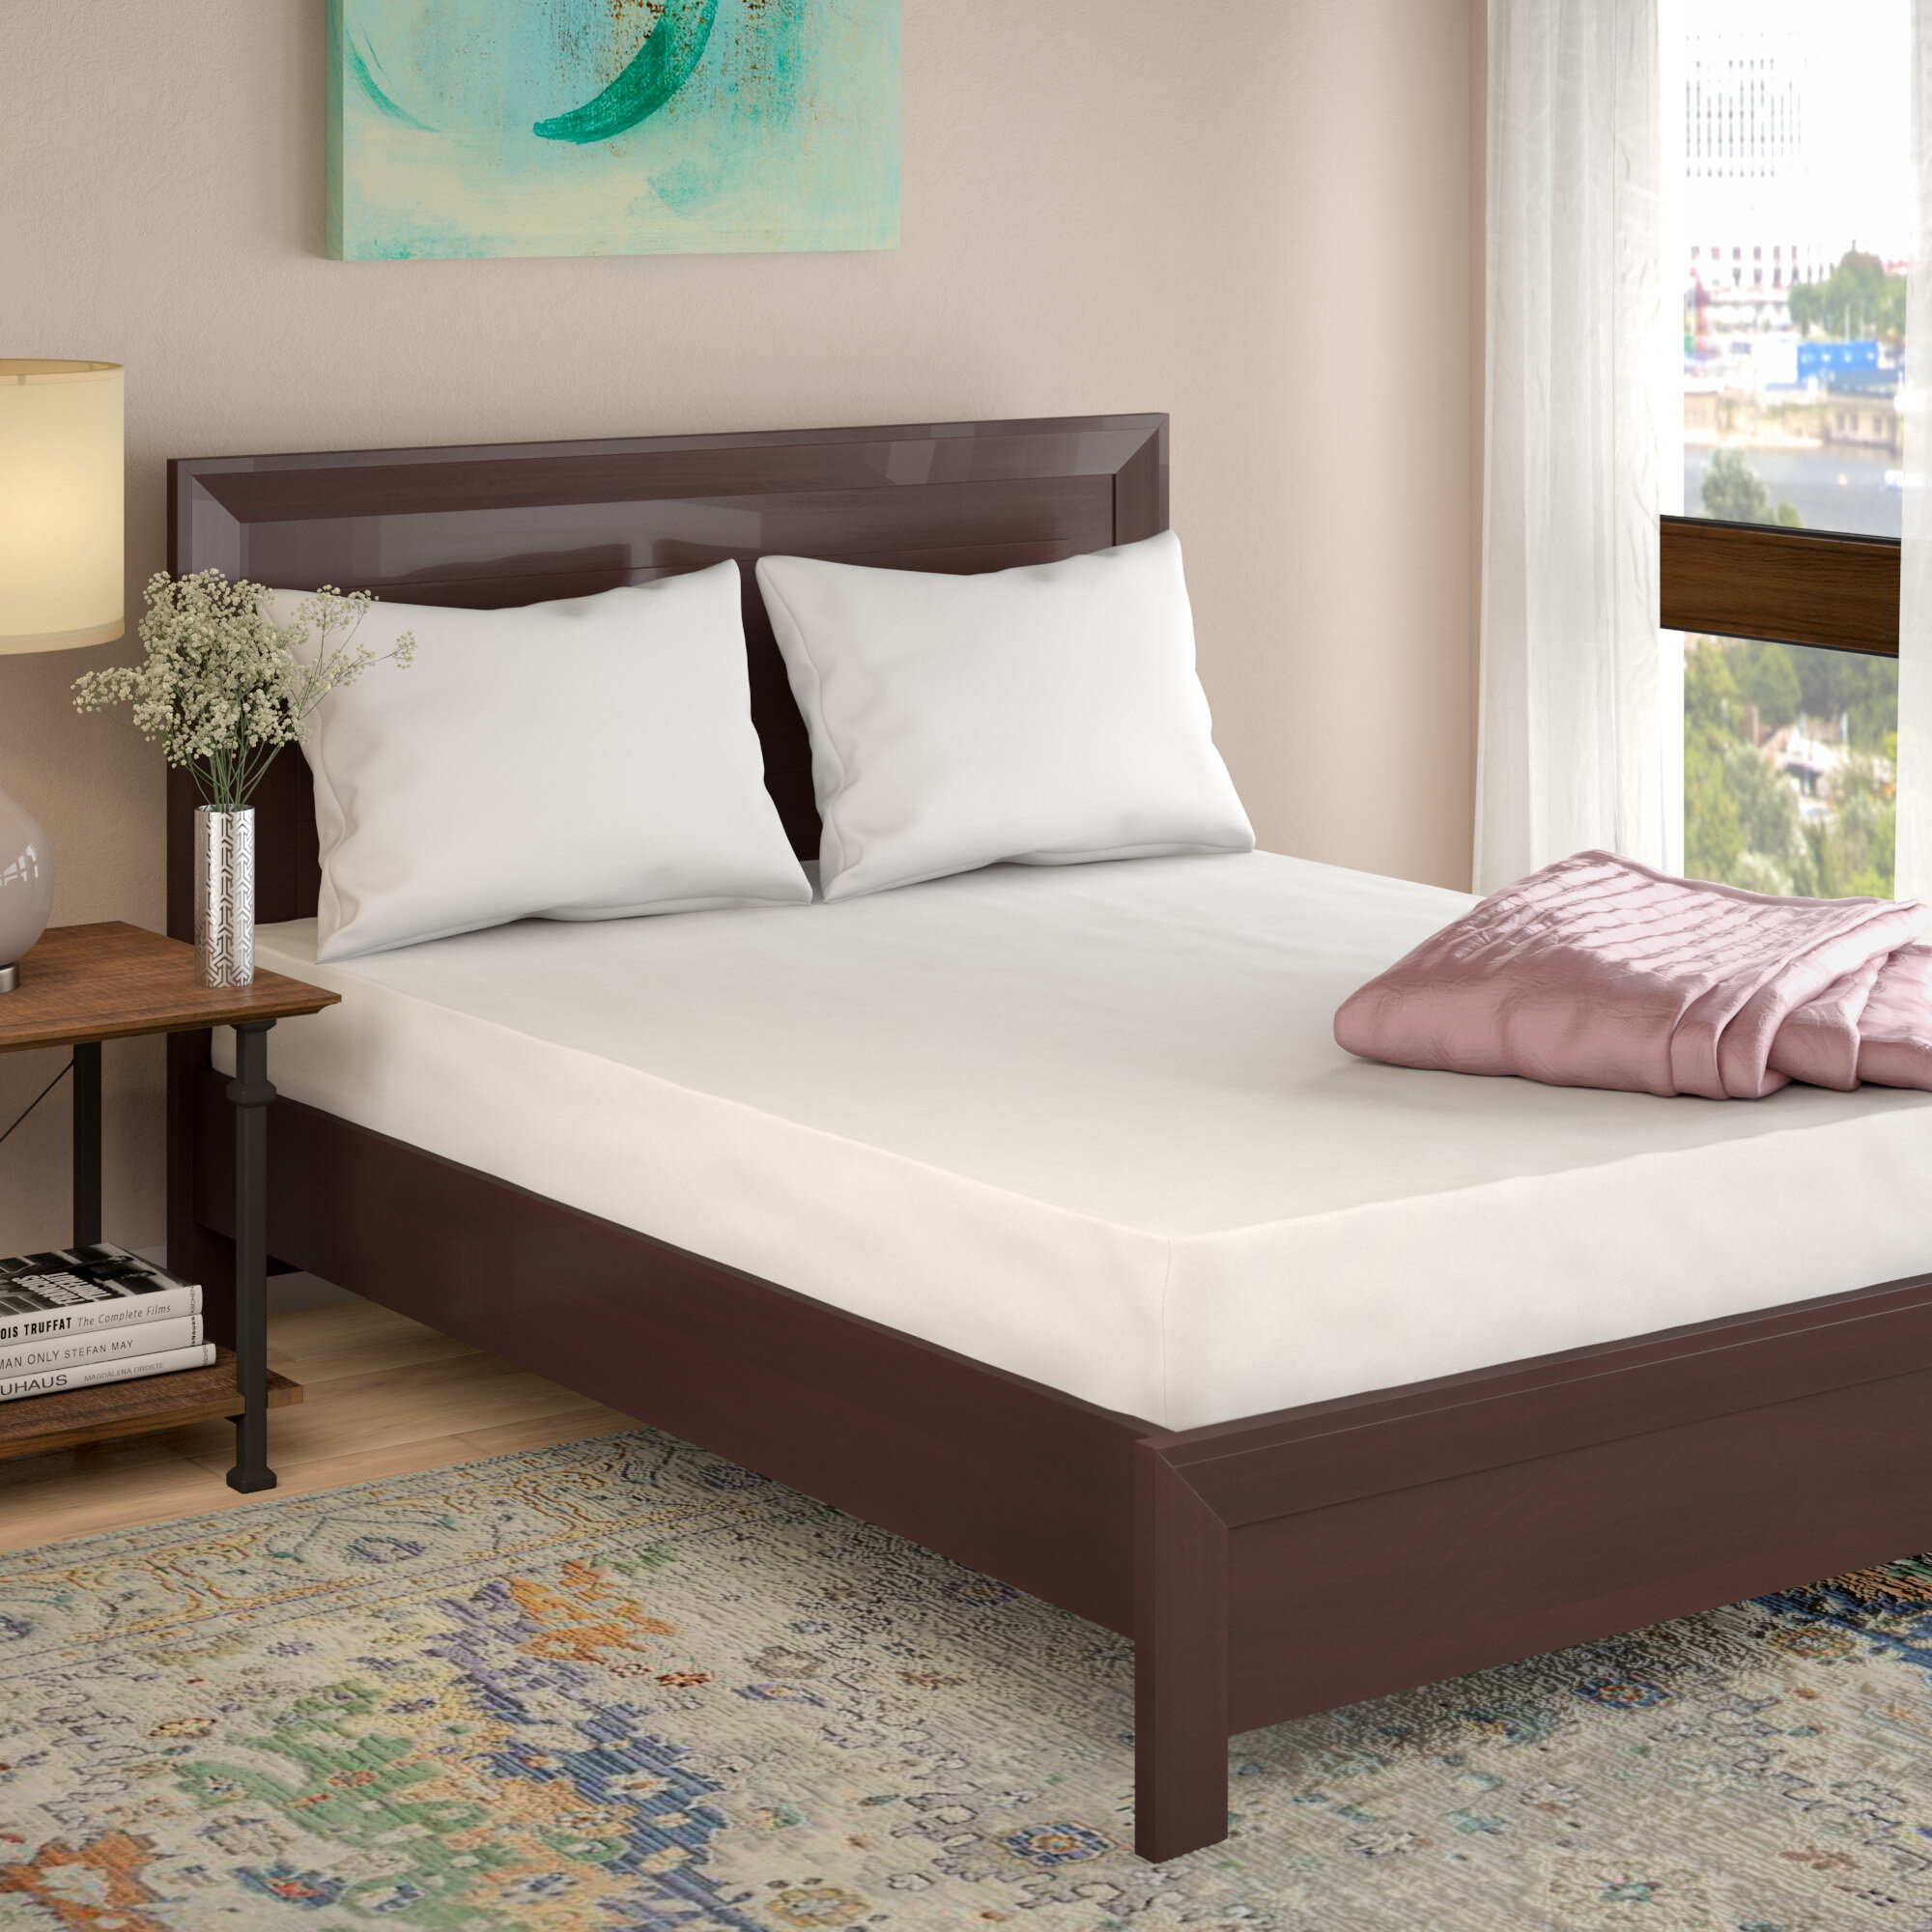 bedding shipping orders bath over protector overstock waterproof free pad mattress beautyrest on product king